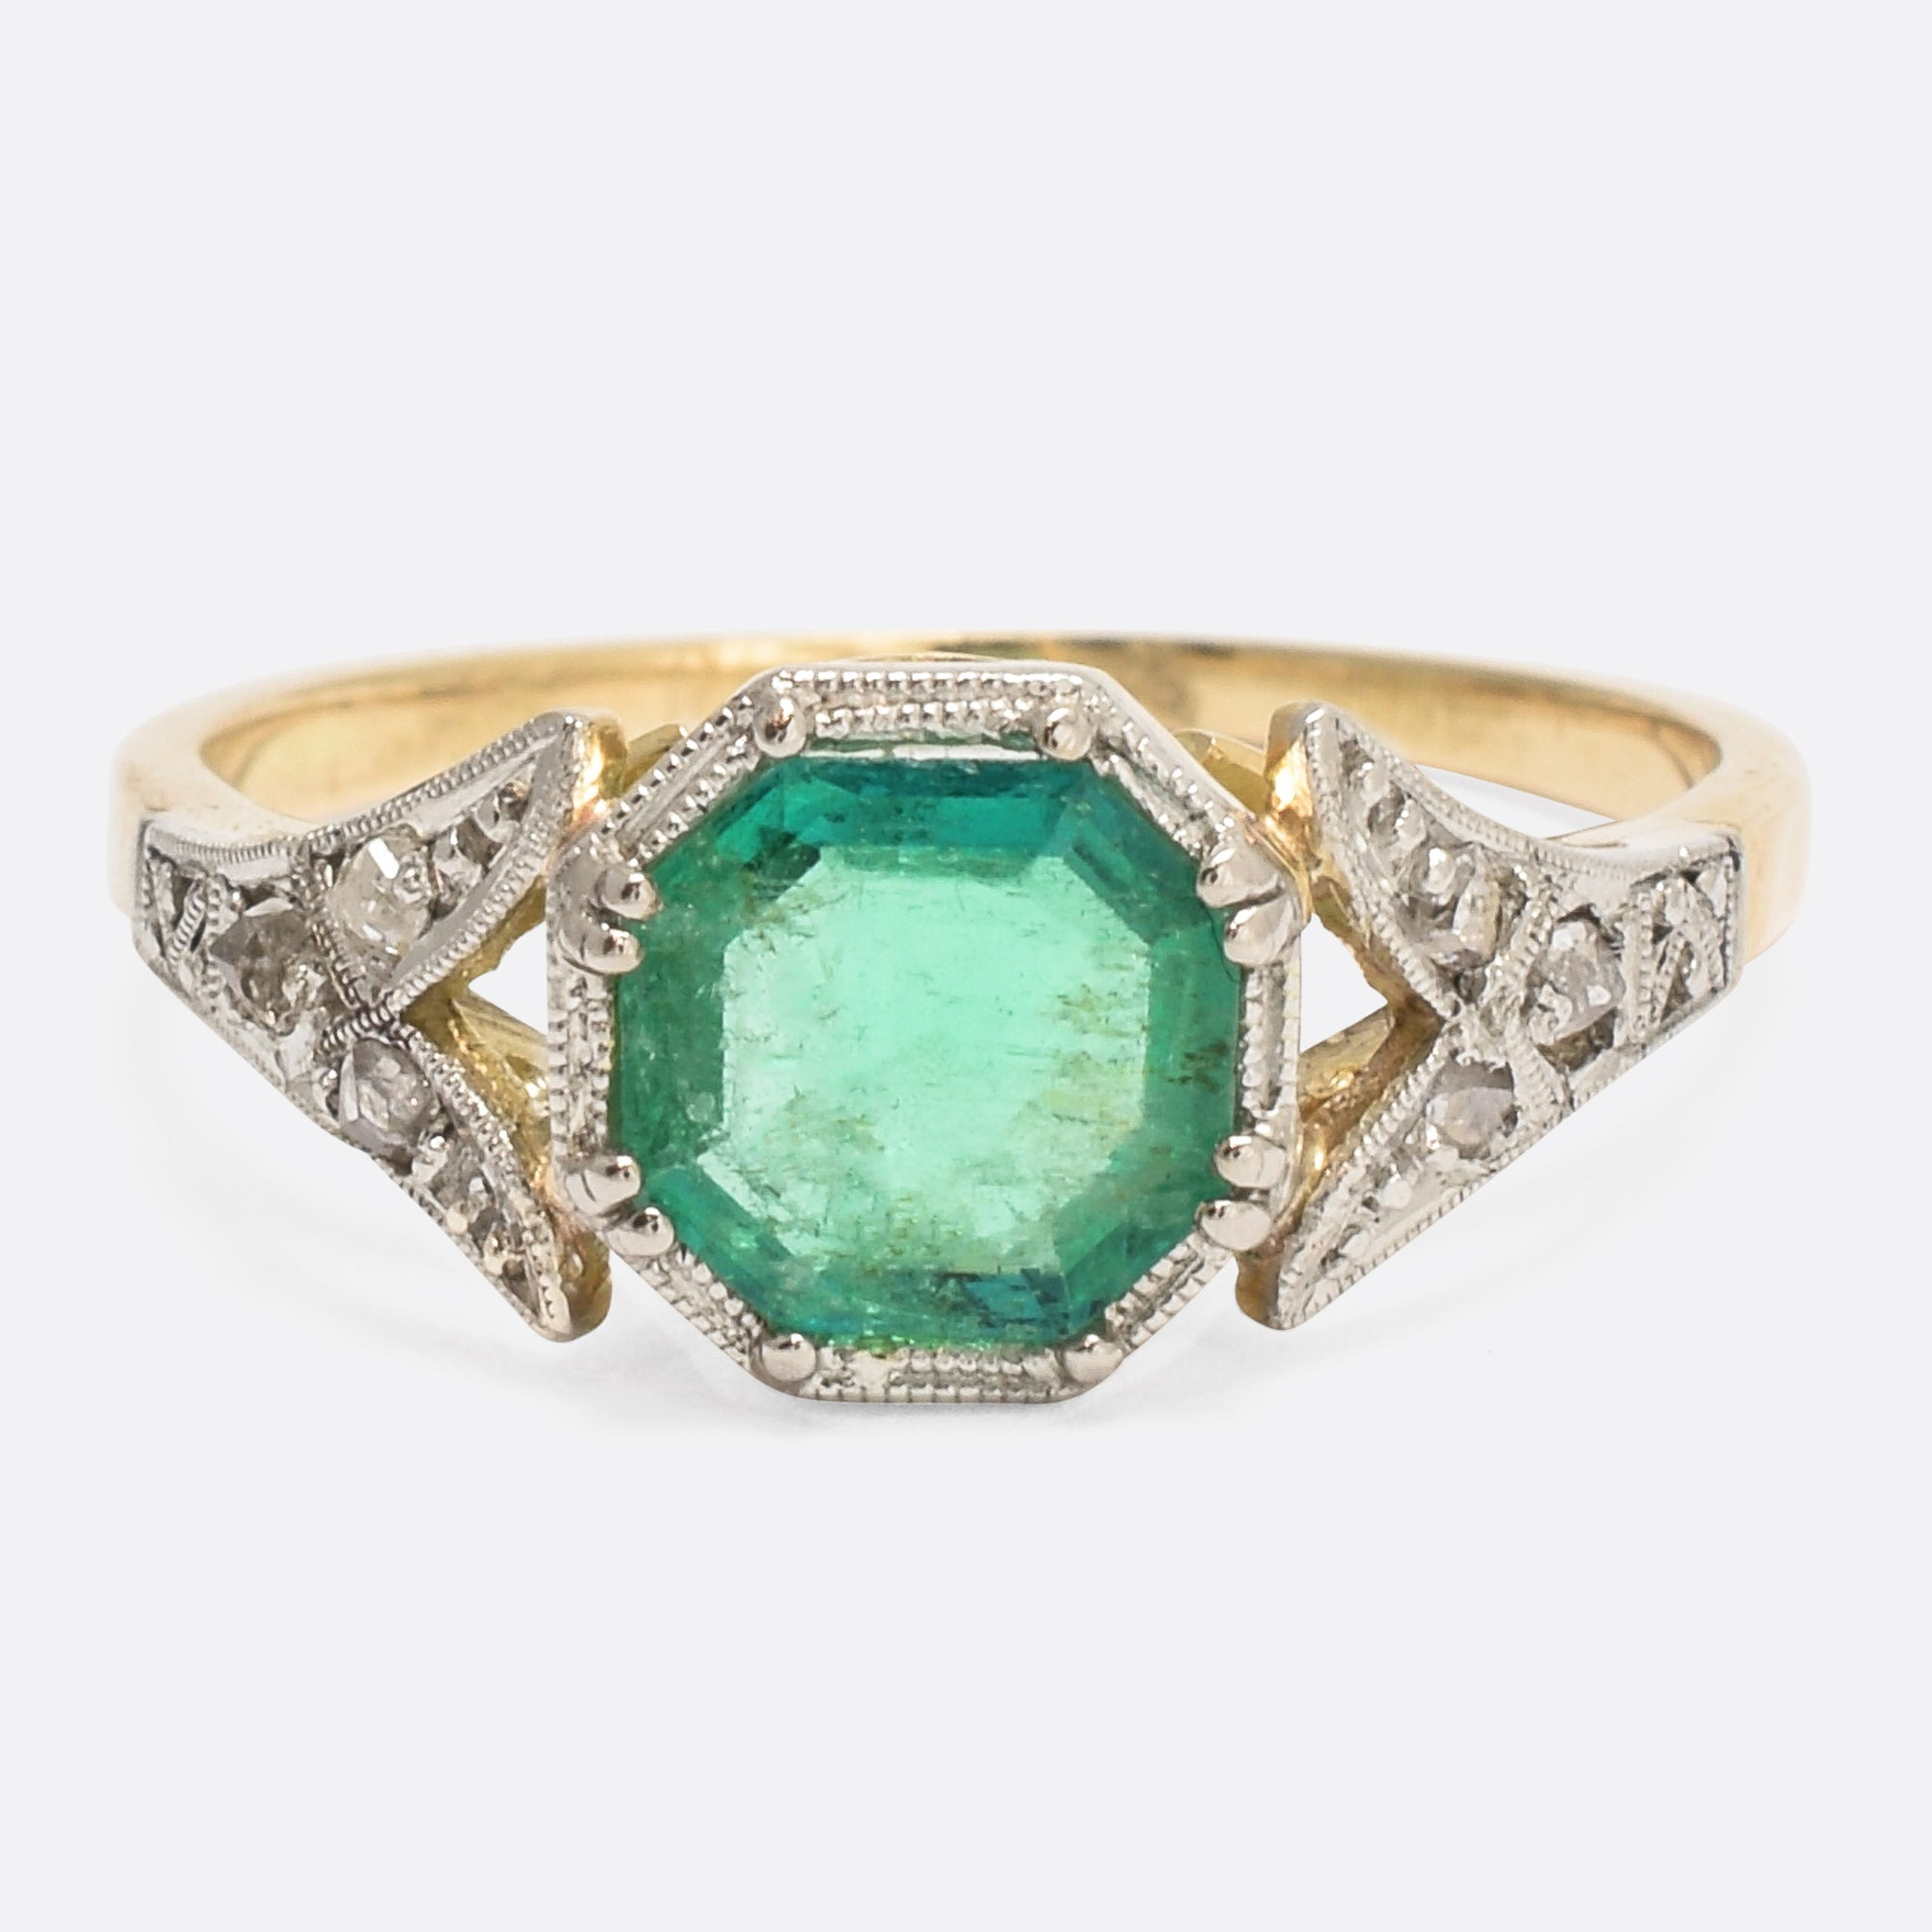 rings emeral boston mfj ring engagement shop emerald custom m estate flynn jewelry